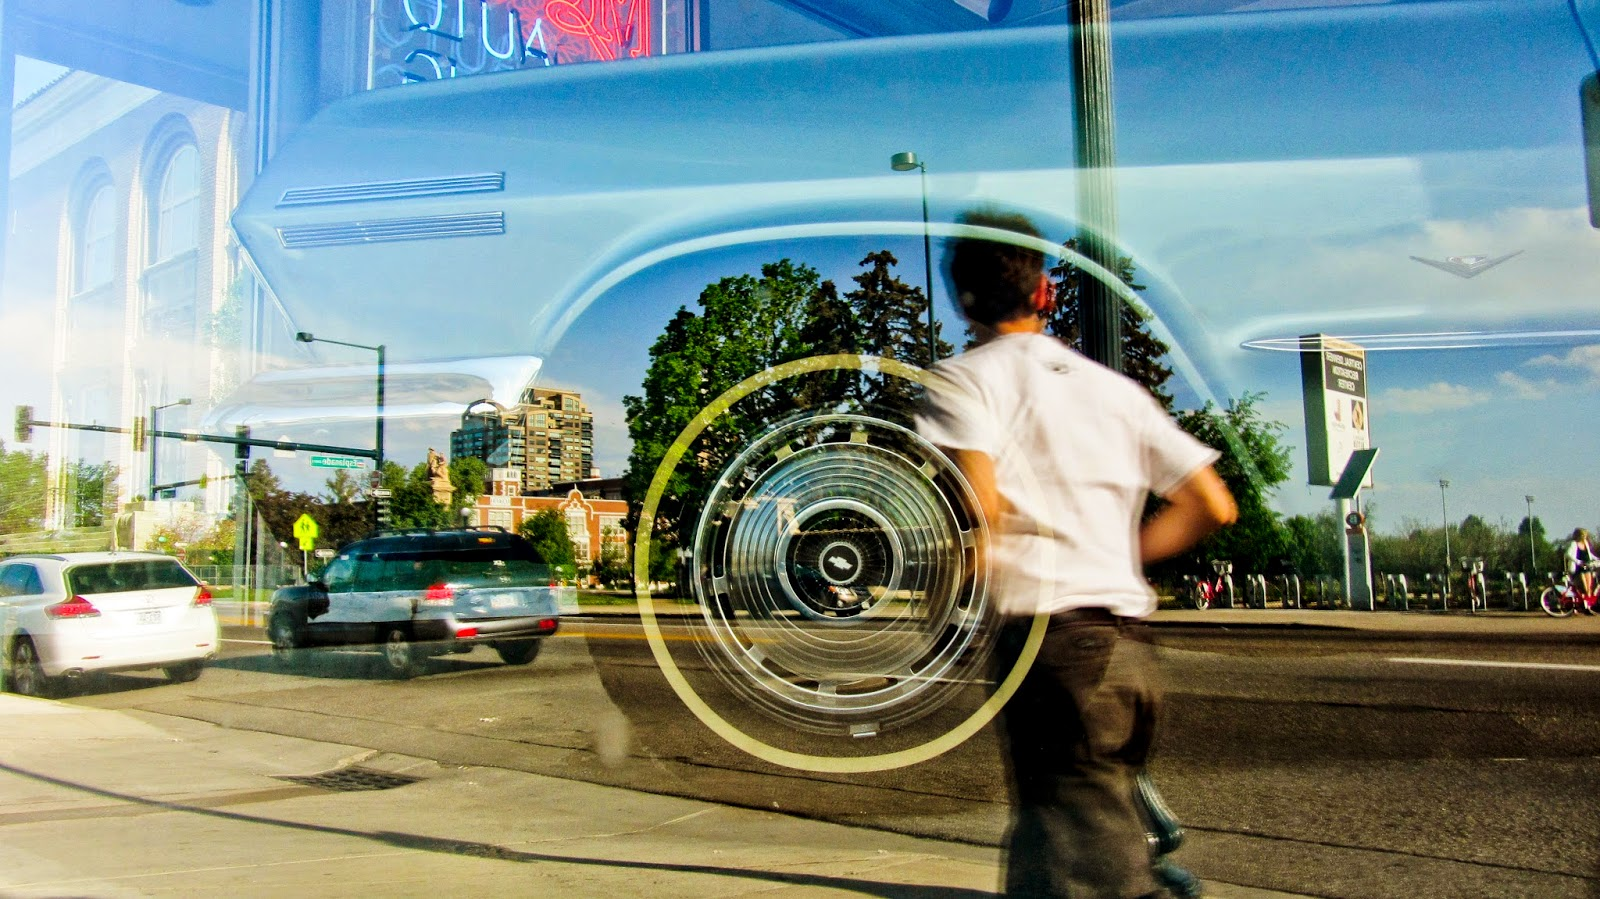 The wheel and hubcap of an old Chevrolet and a reflection of a Denver street scene.